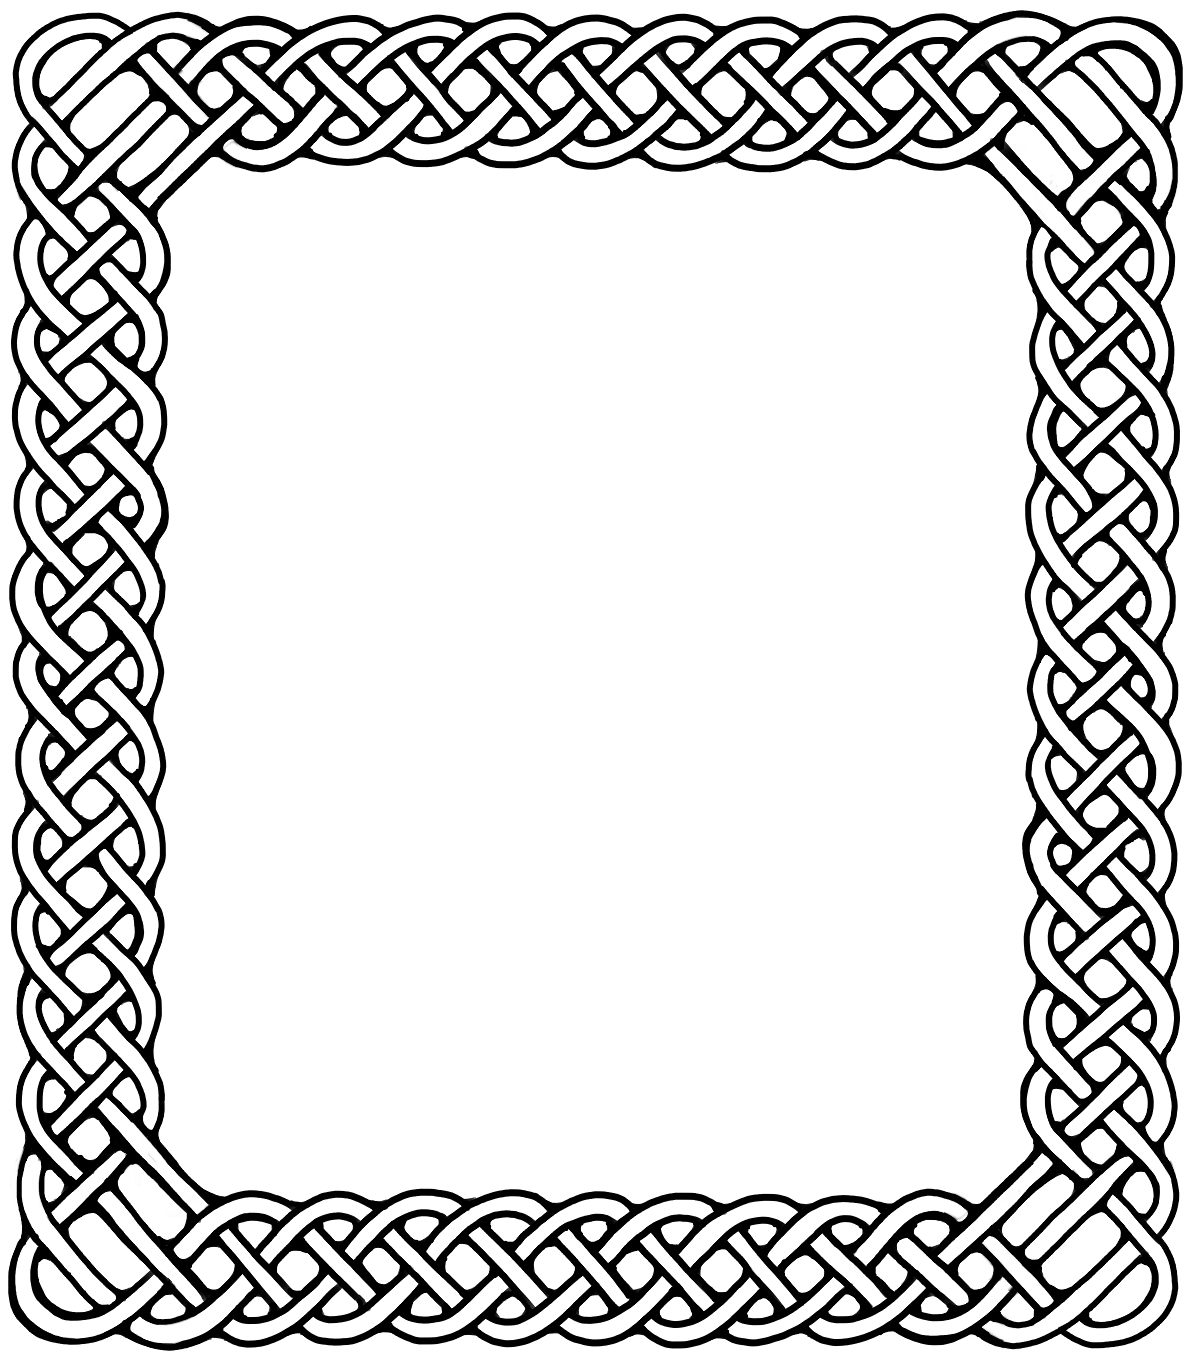 celtic knot border quilt patterns free celtic knots and patterns